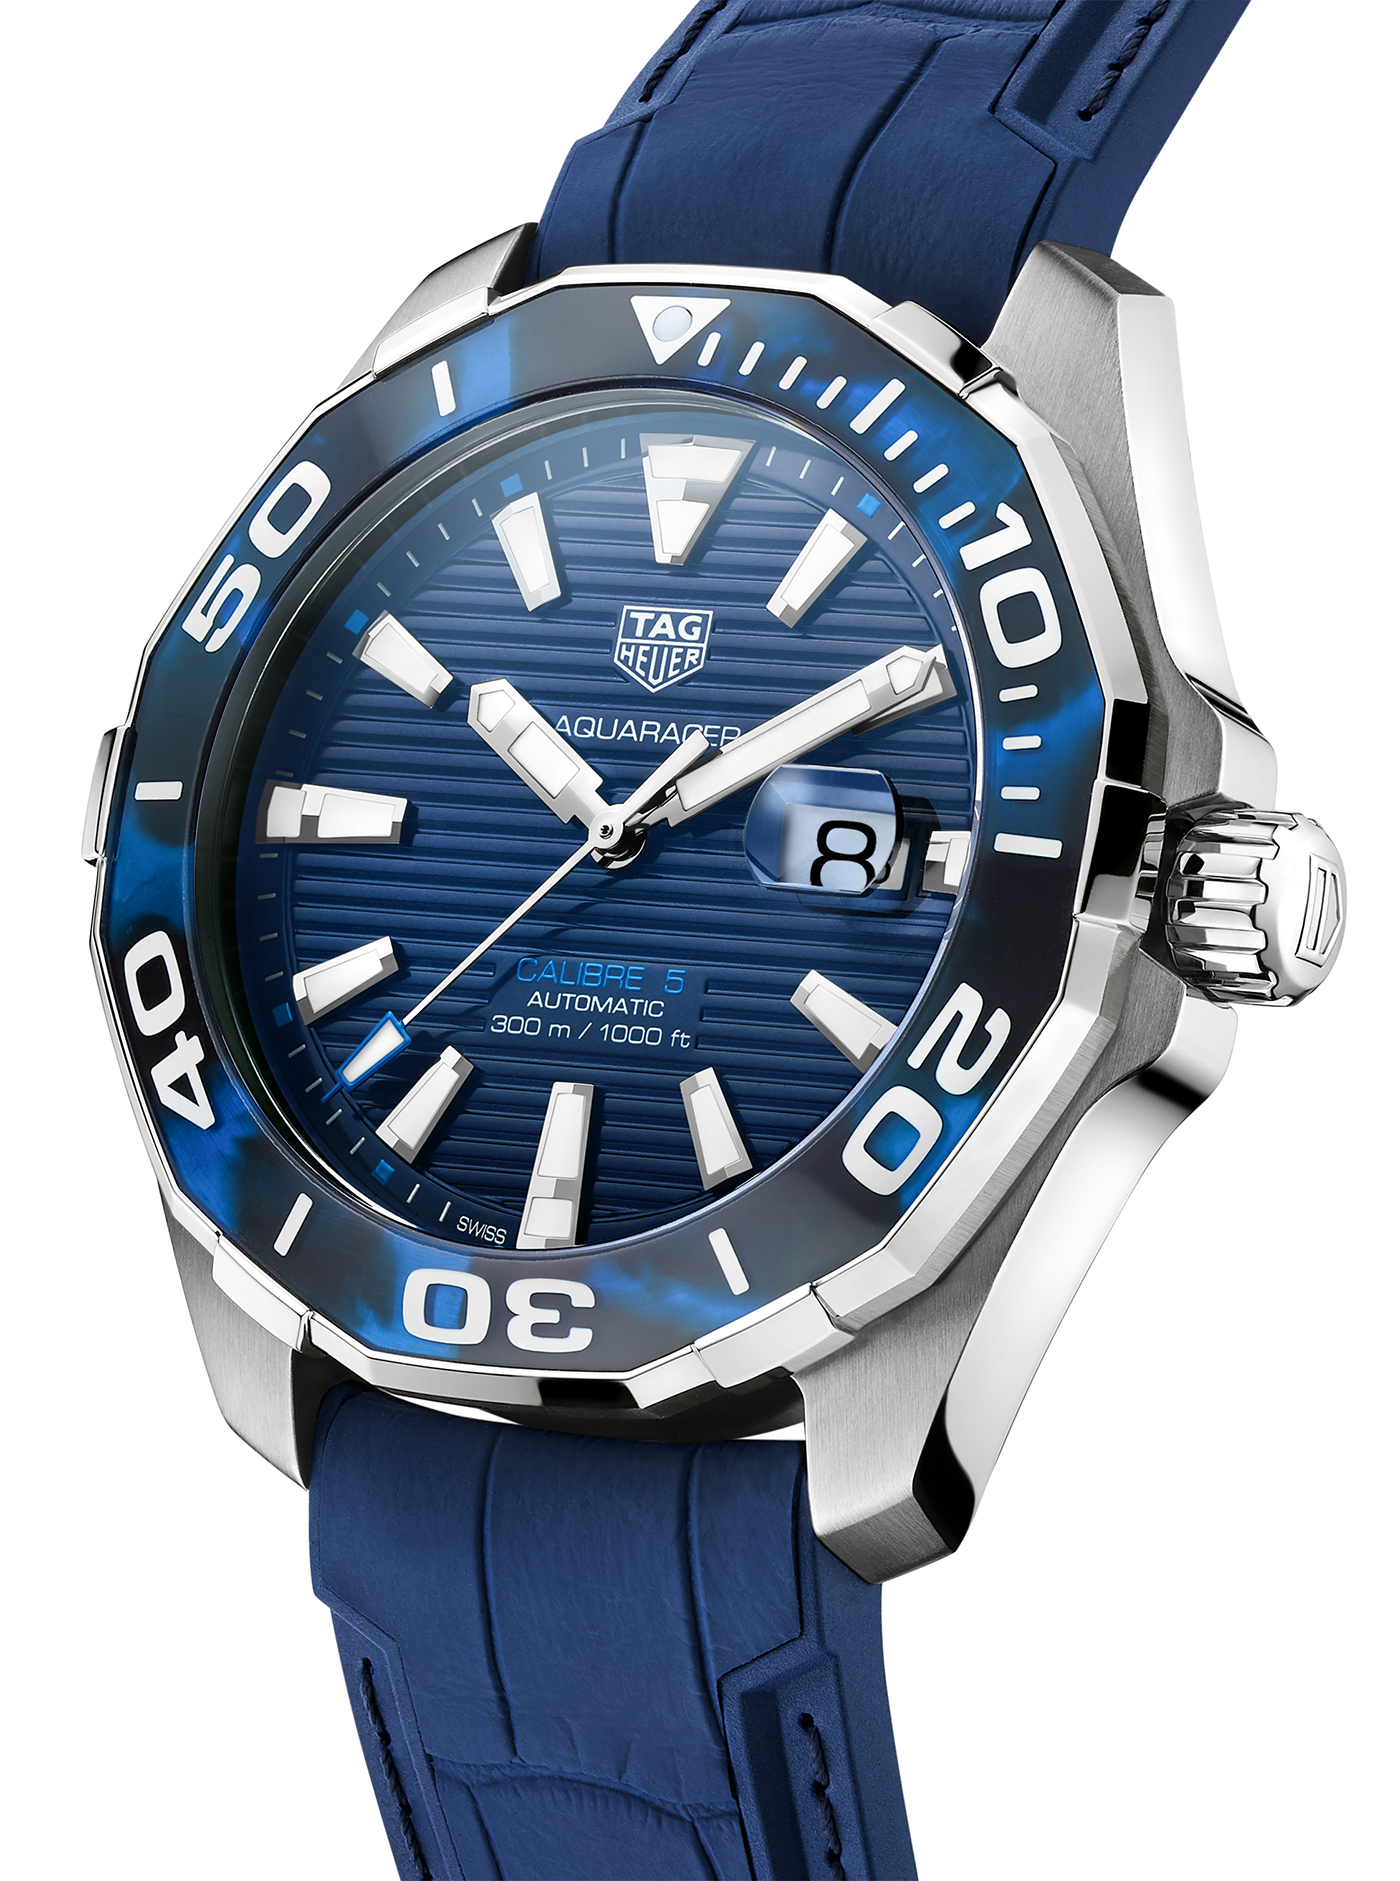 TAG Heuer Special Aquaracer Replica With Tortoise Shell Inspired Bezels